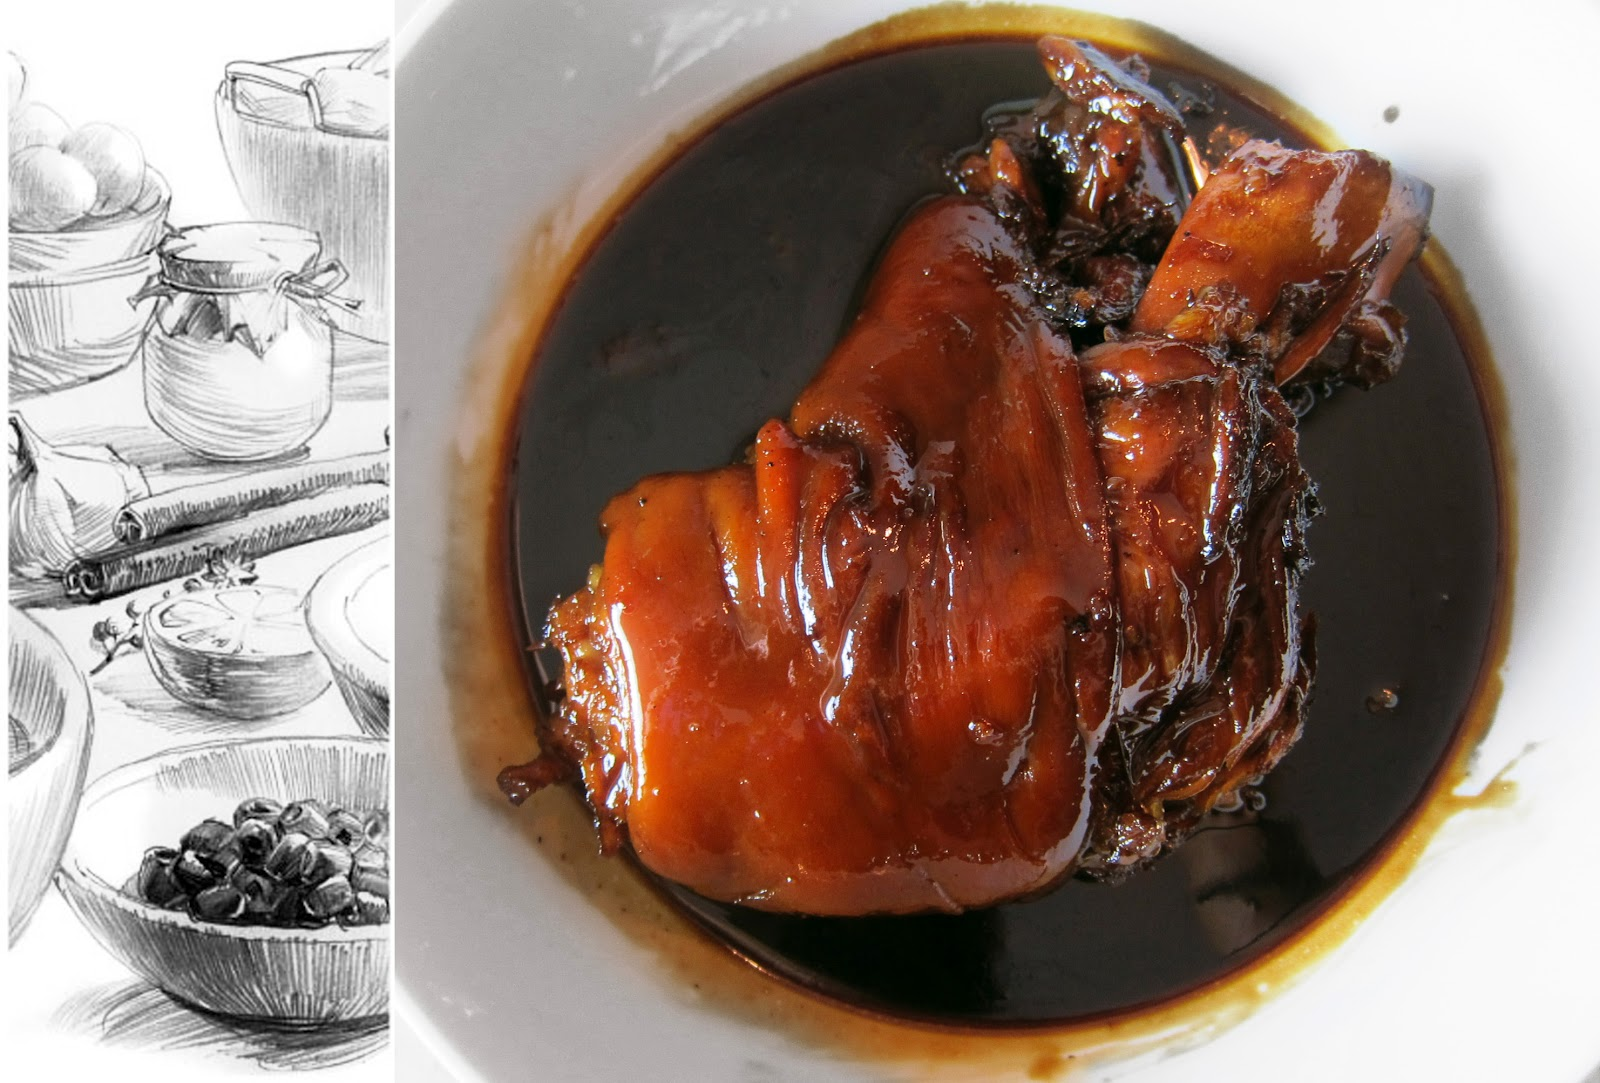 Shanghai Red Cooked Pork Hock 紅燒蹄髈 | Foodmanna